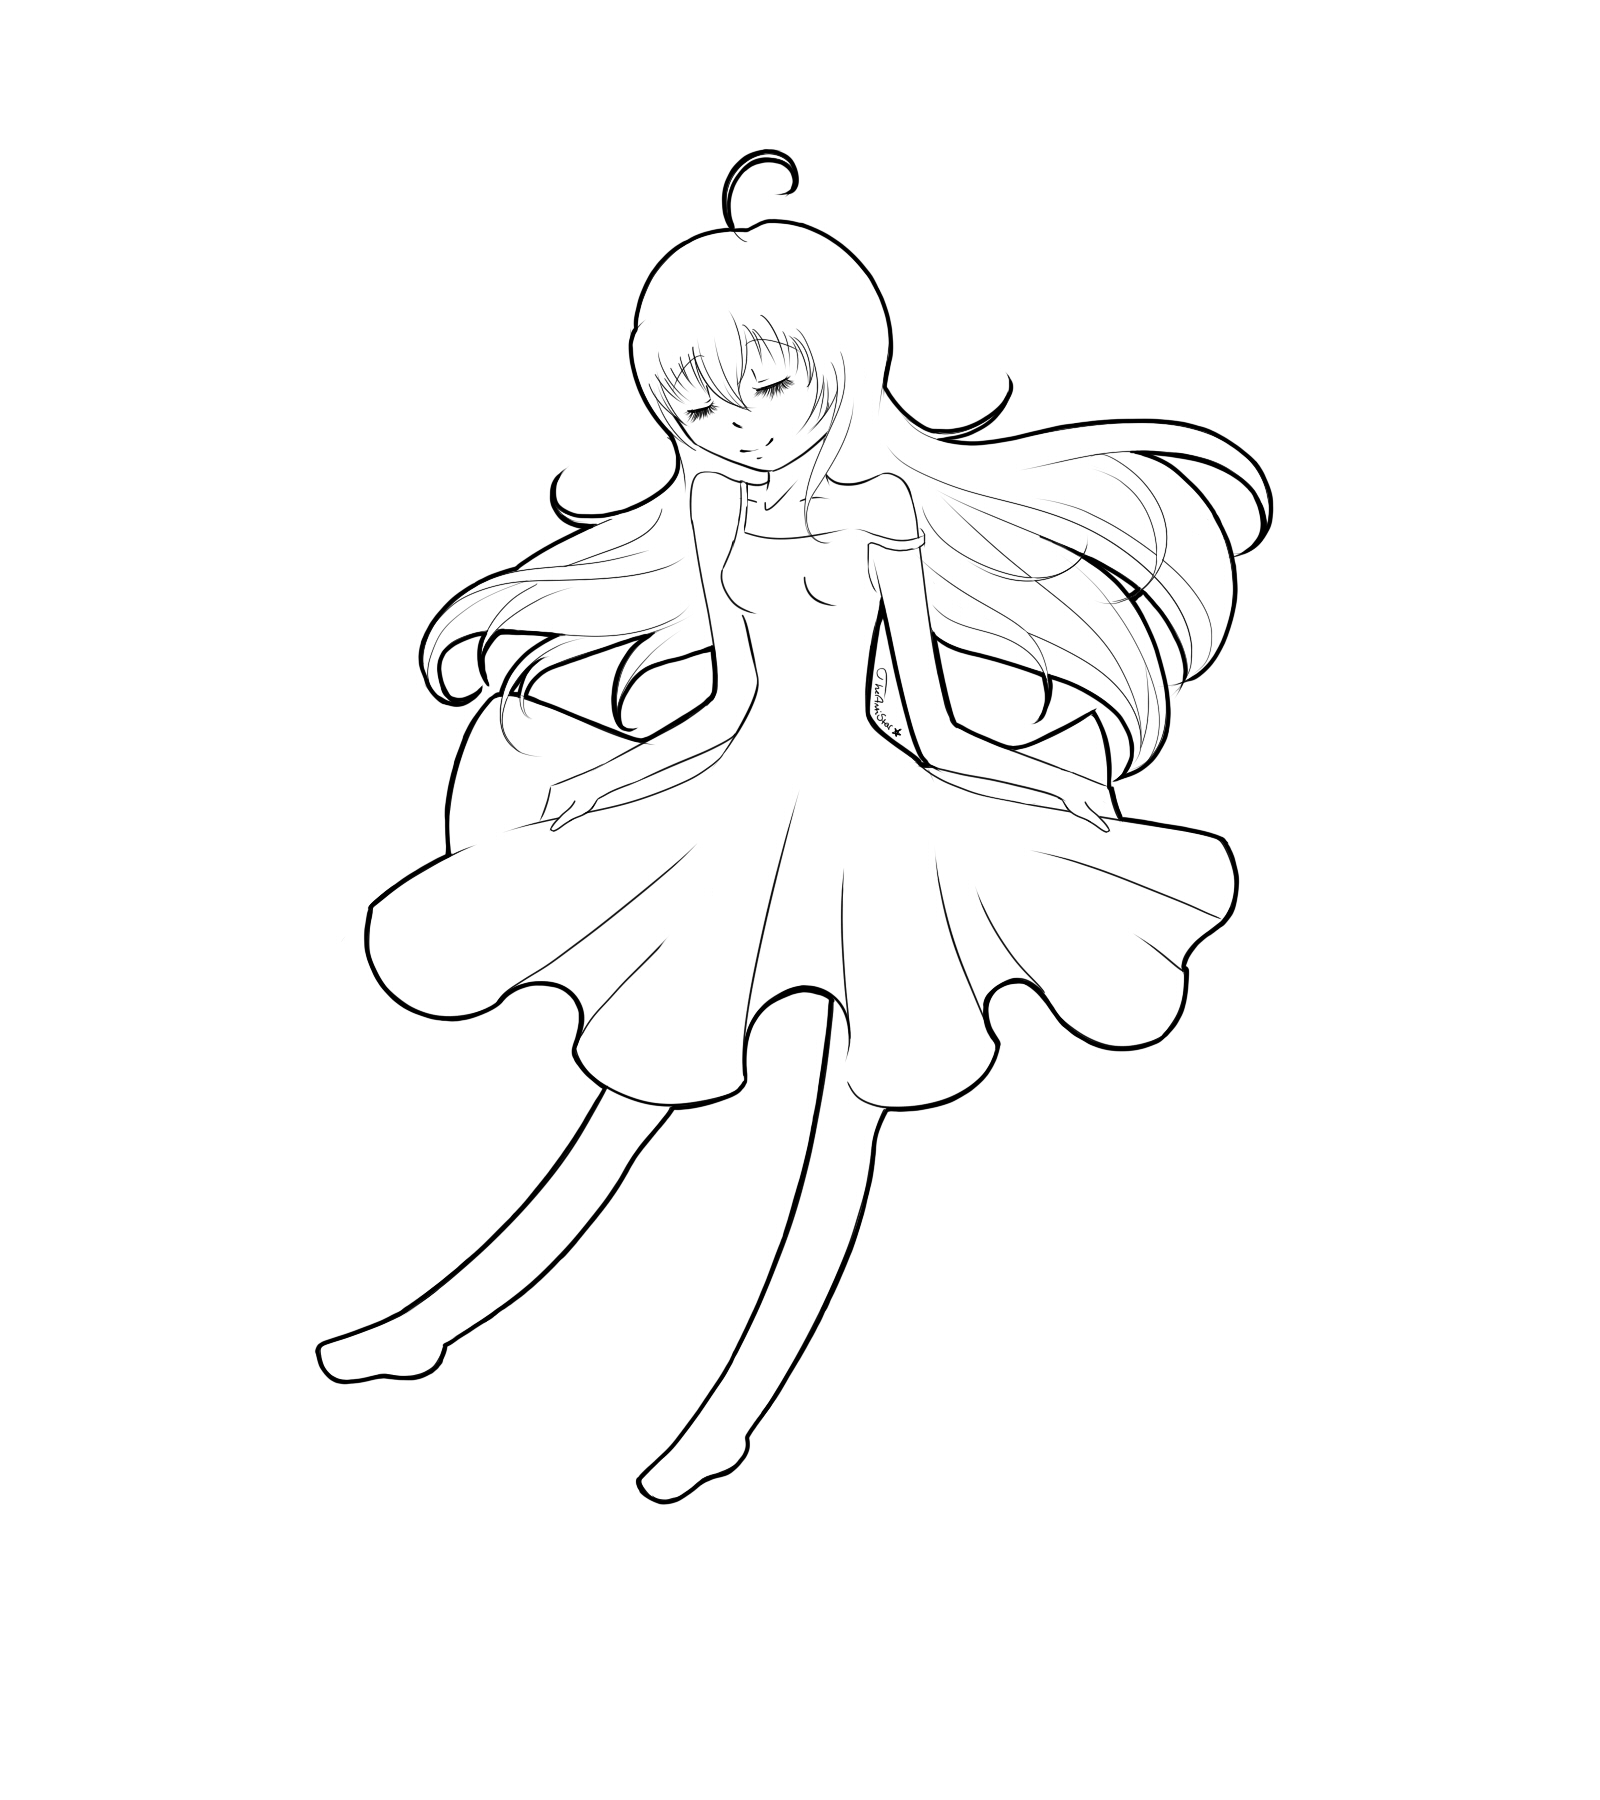 White dress drawing -  Girl Wearing A White Dress By Theantistar